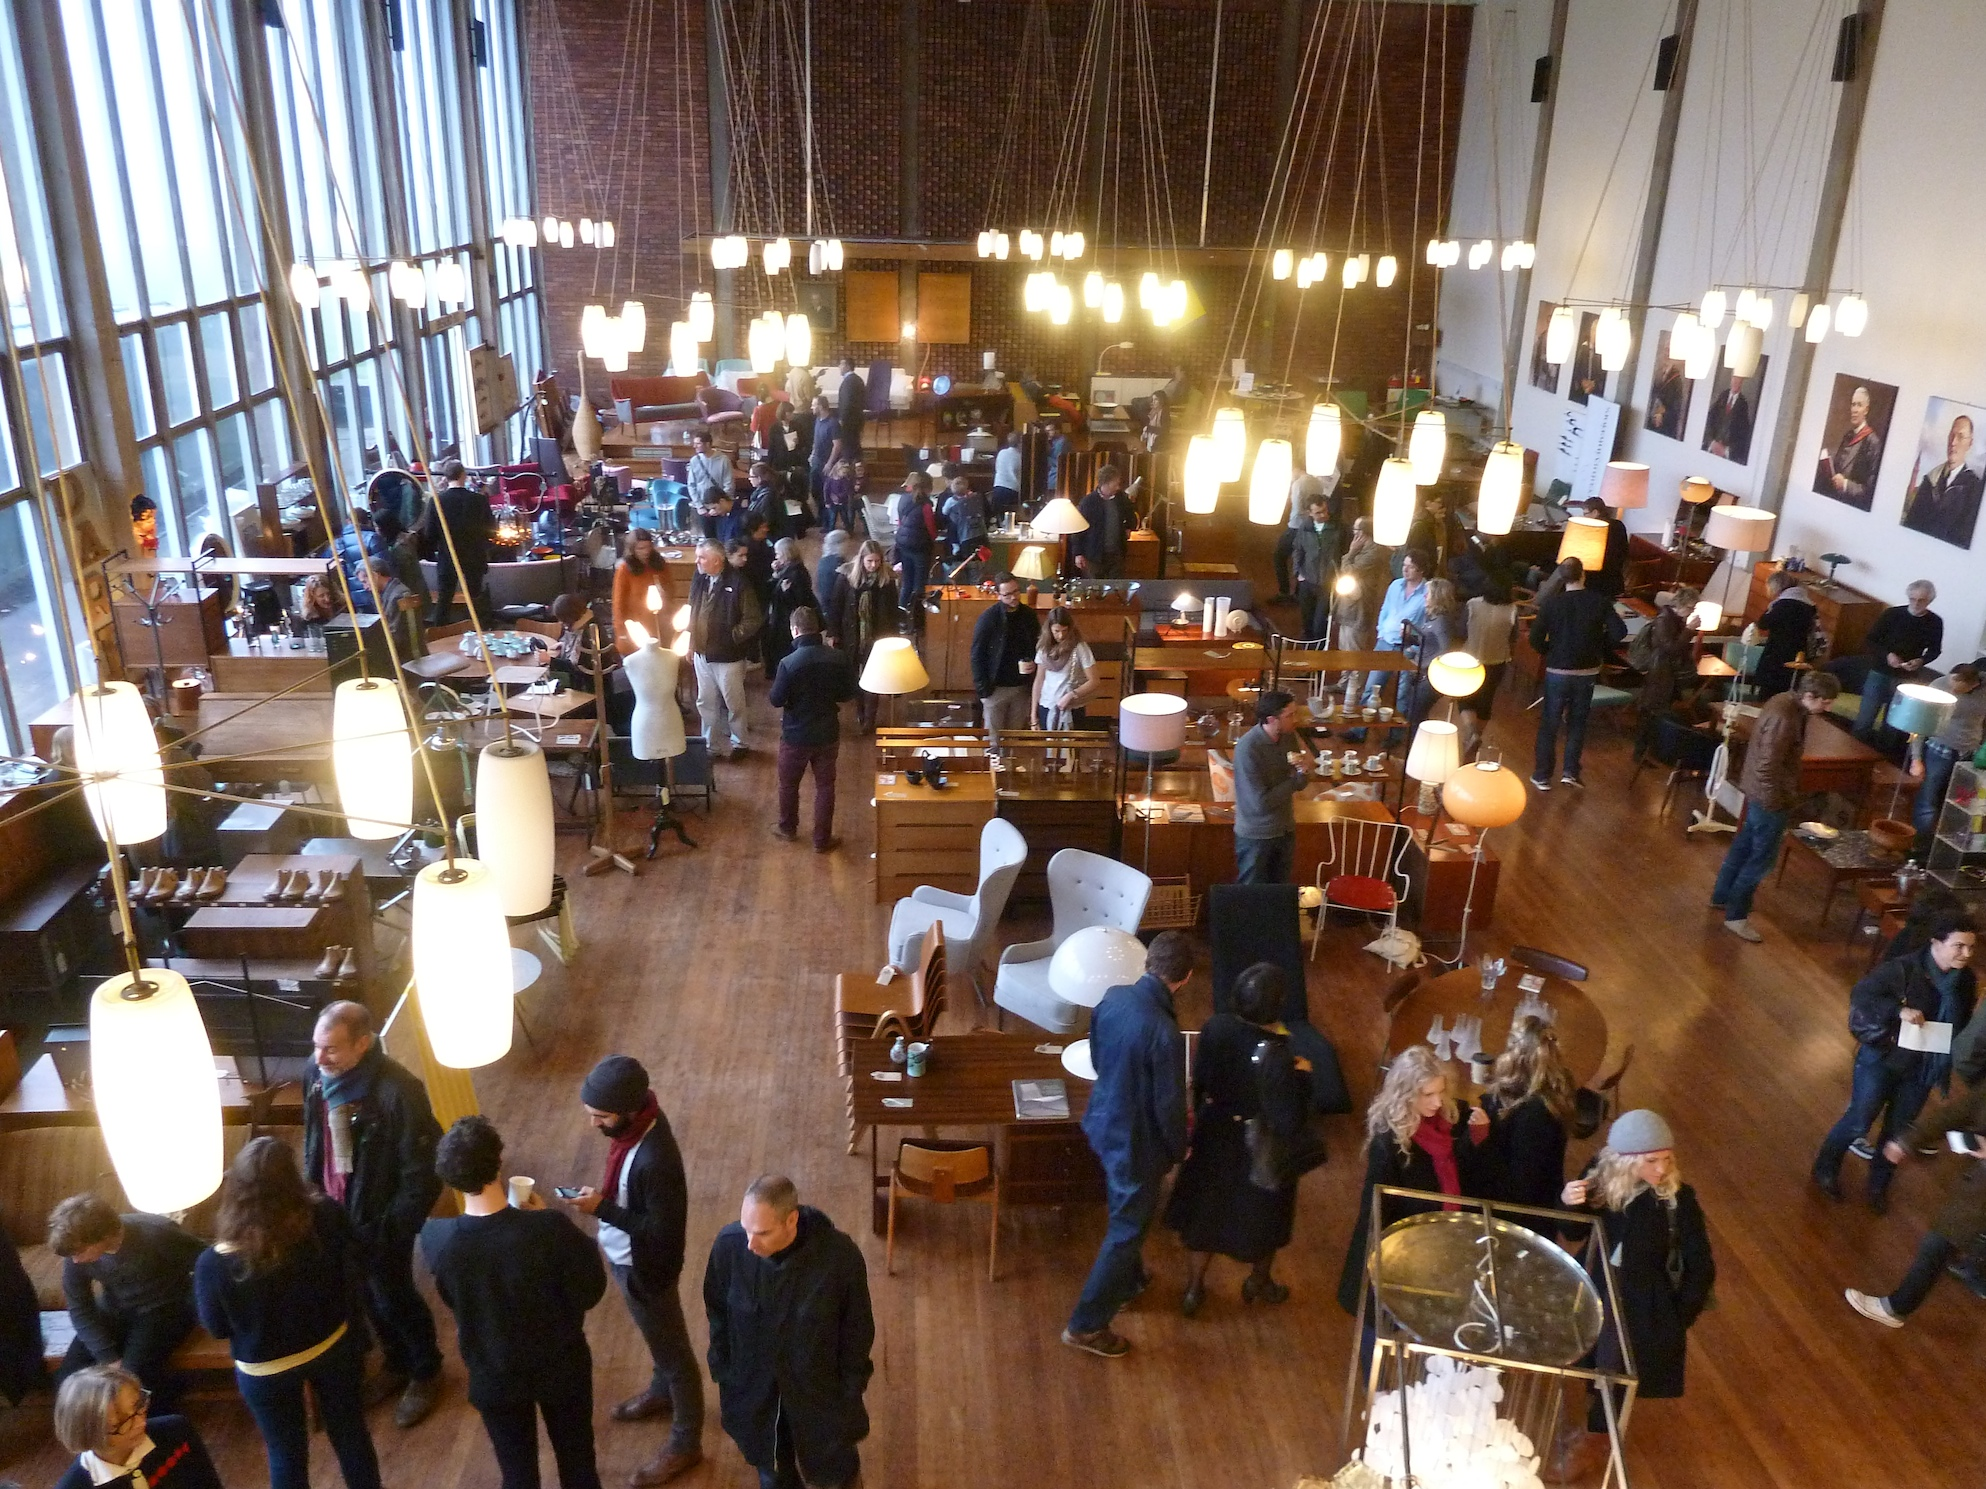 The main hall at Midcentury Modern in Dulwich College